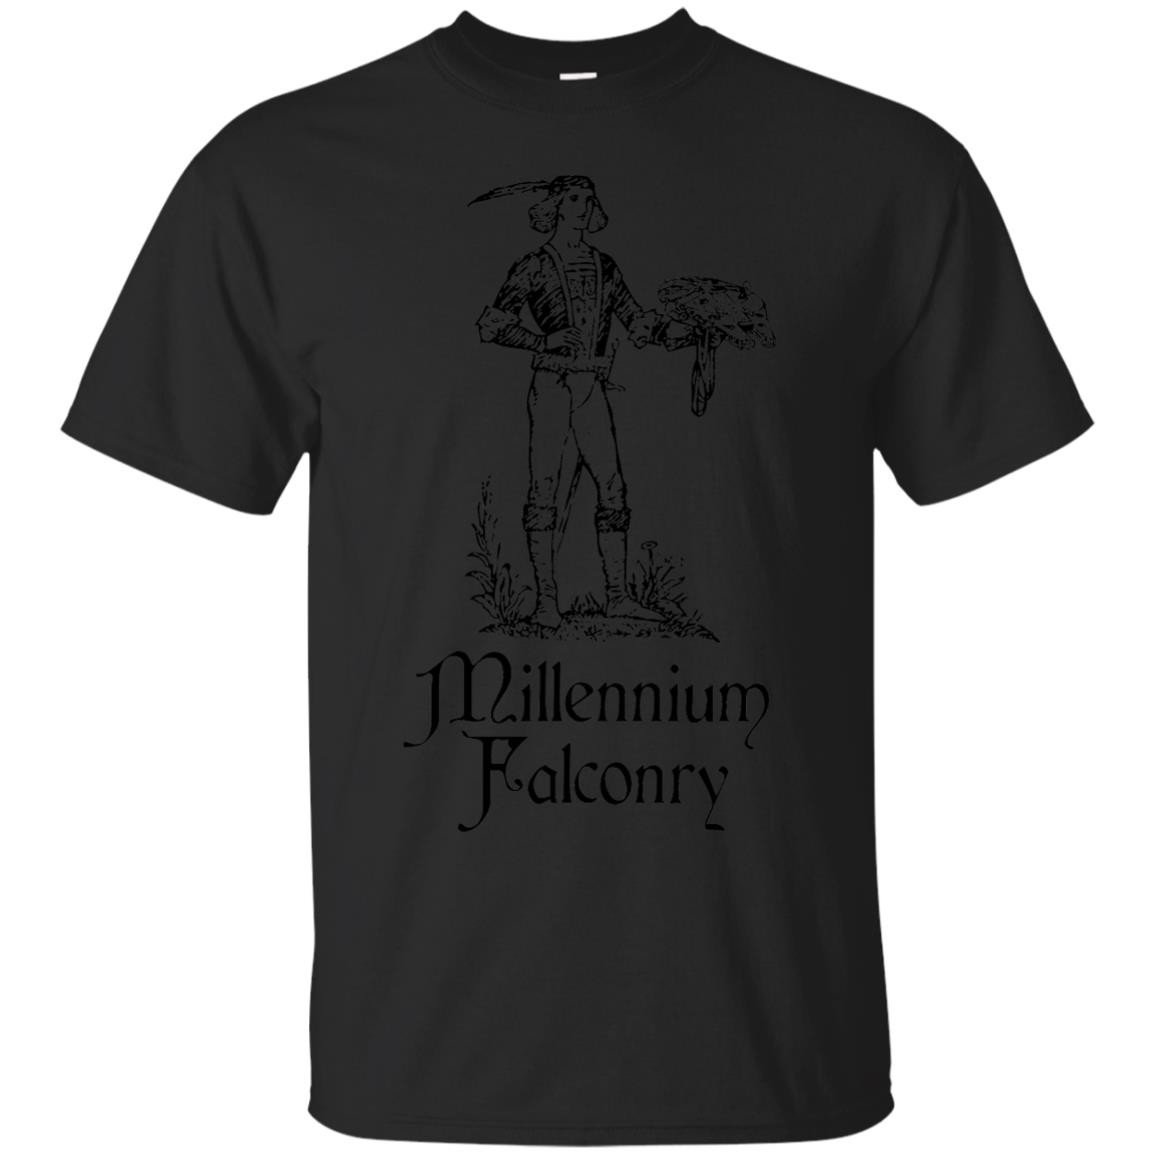 Millennium Falconry Cotton T-Shirt